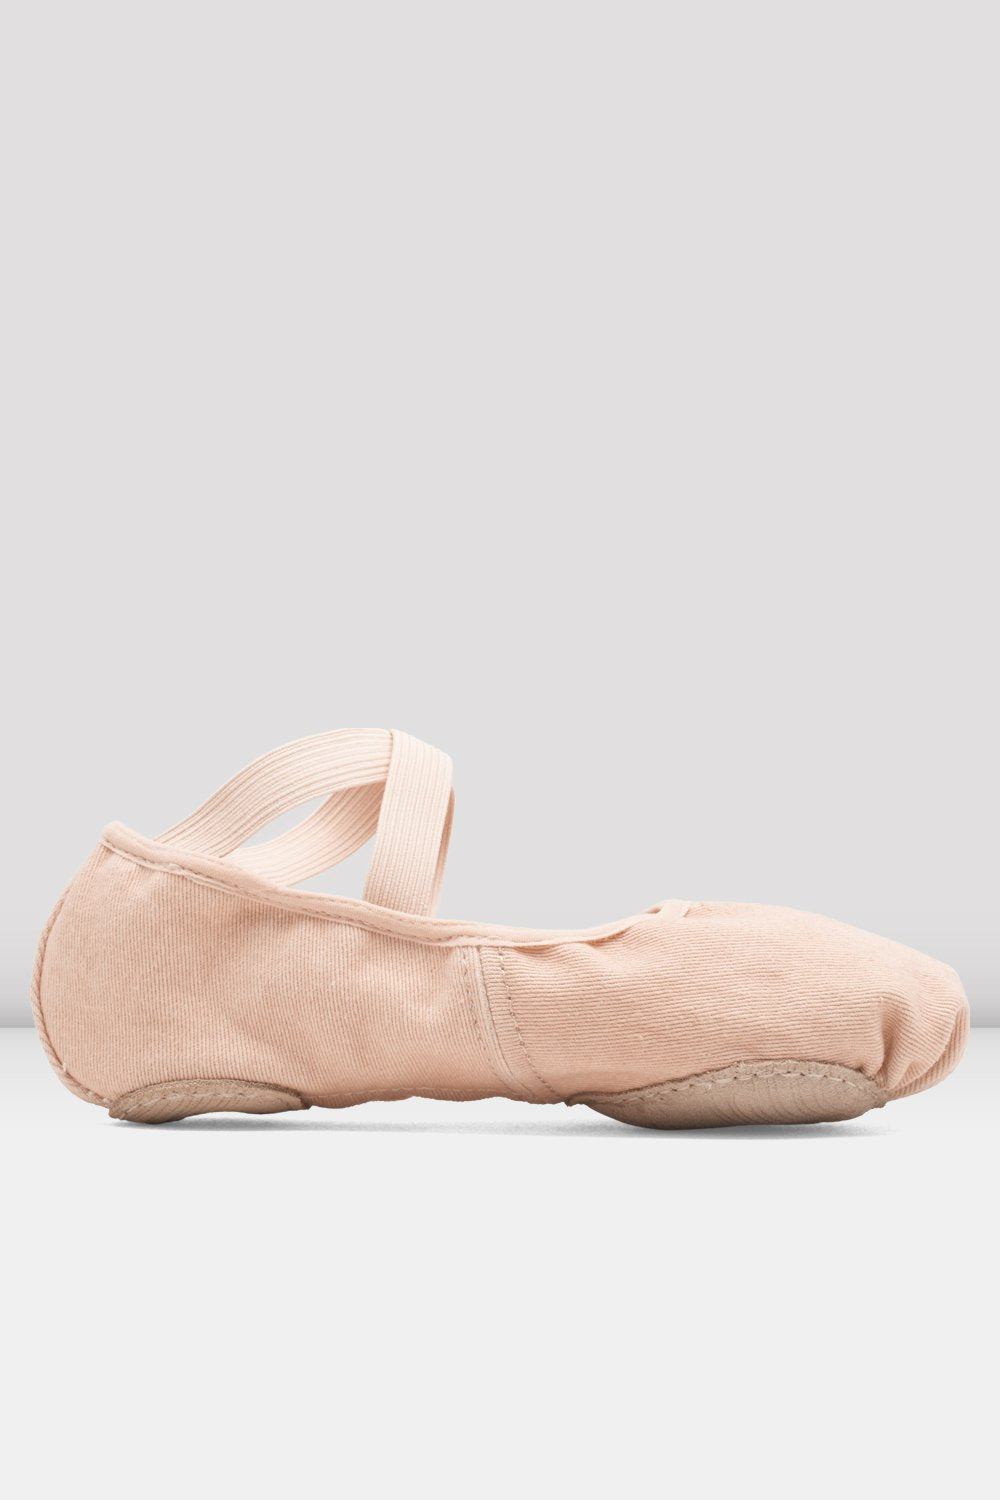 Pink canvas Bloch Ladies Infinity Stretch Canvas Ballet Shoes single shoe side view